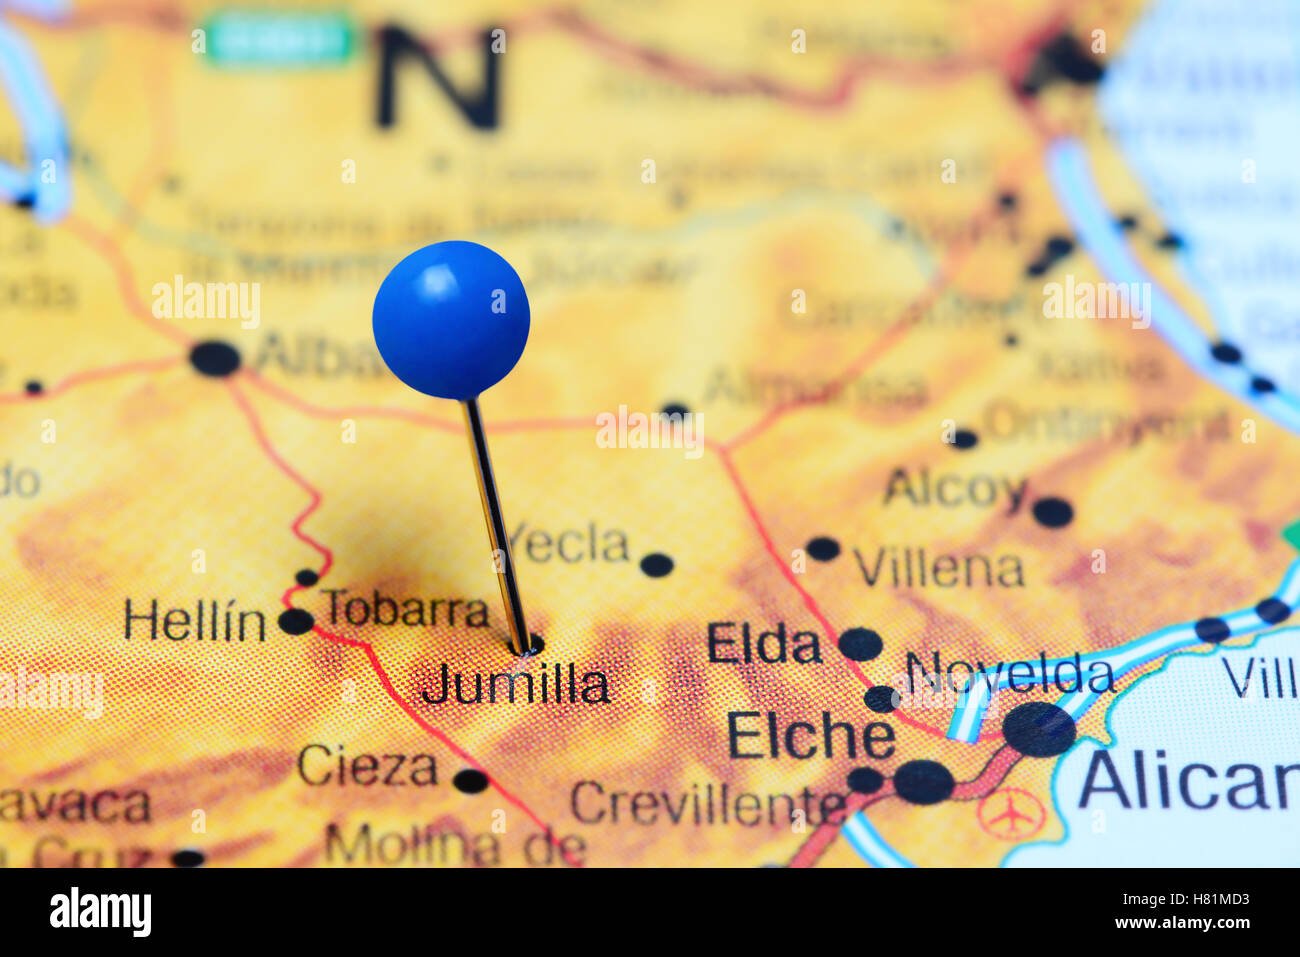 Jumilla Pinned On A Map Of Spain Stock Photo 125427823 Alamy